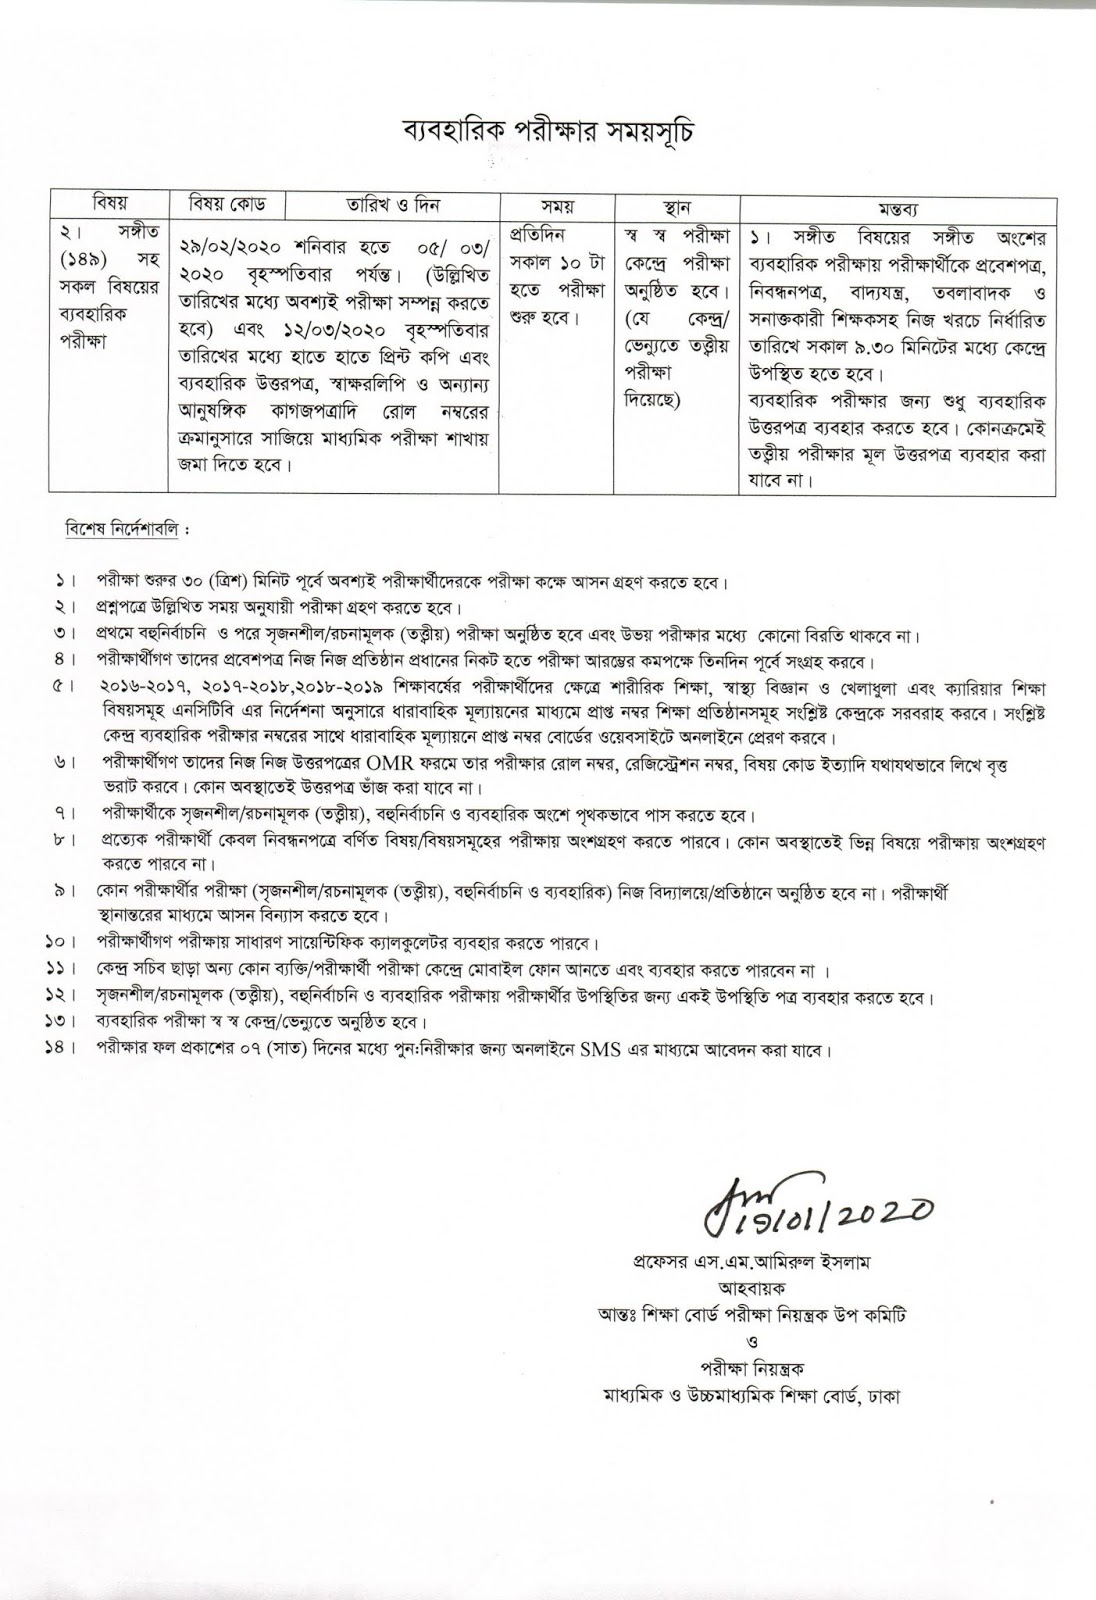 SSC Examination Routine 2020